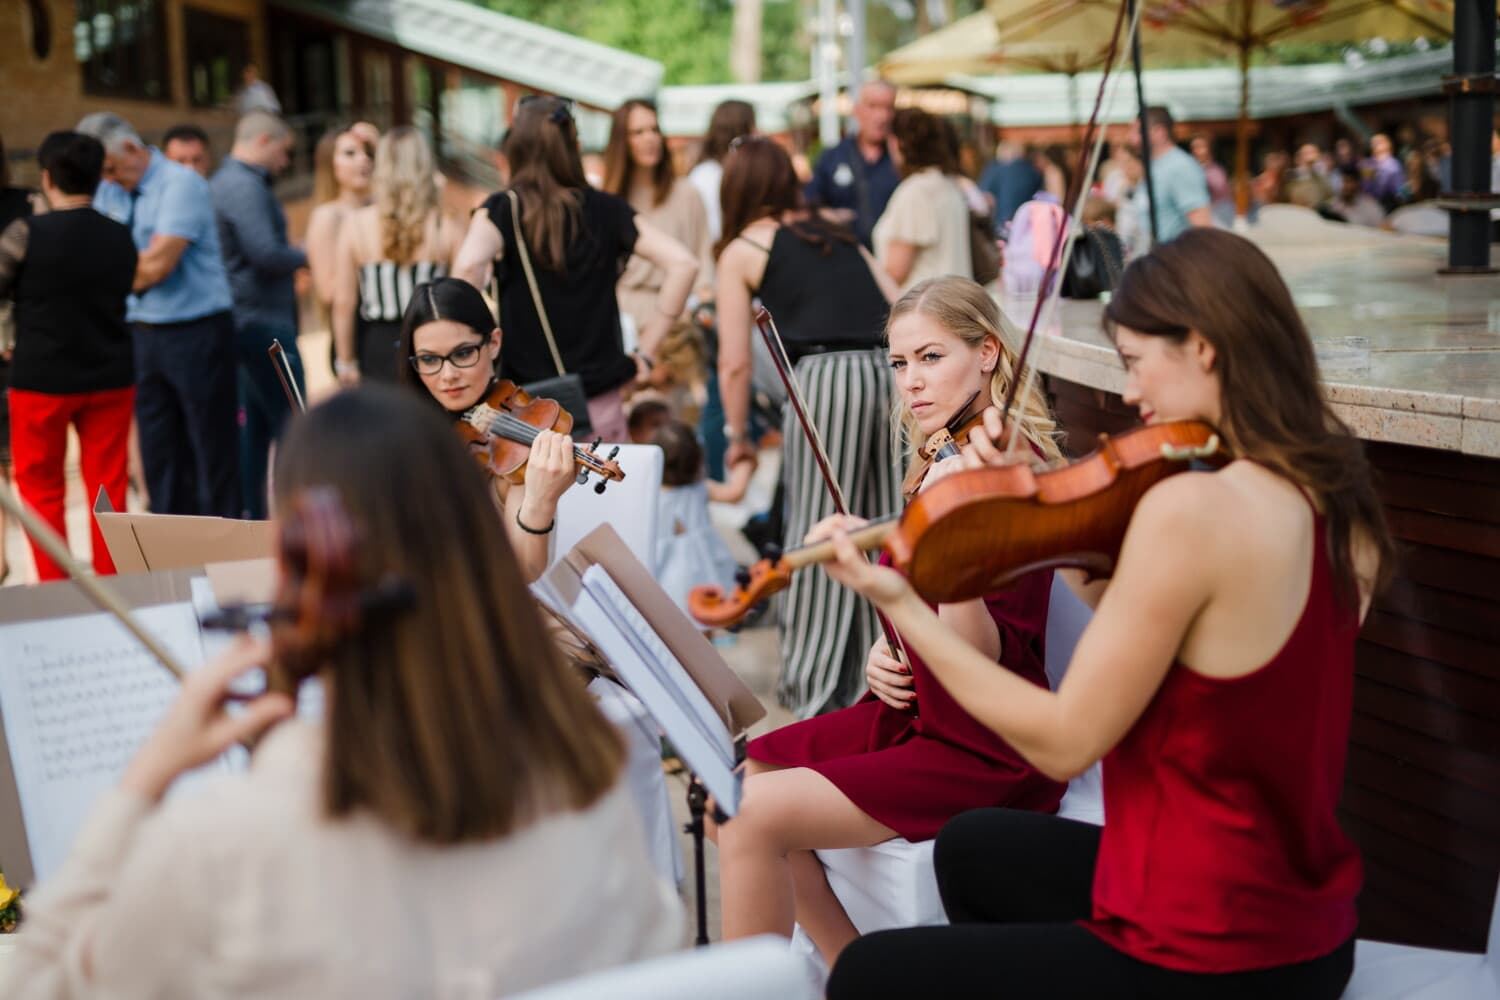 festival, carnival, street, viola, musician, violin, young woman, gorgeous, music, woman